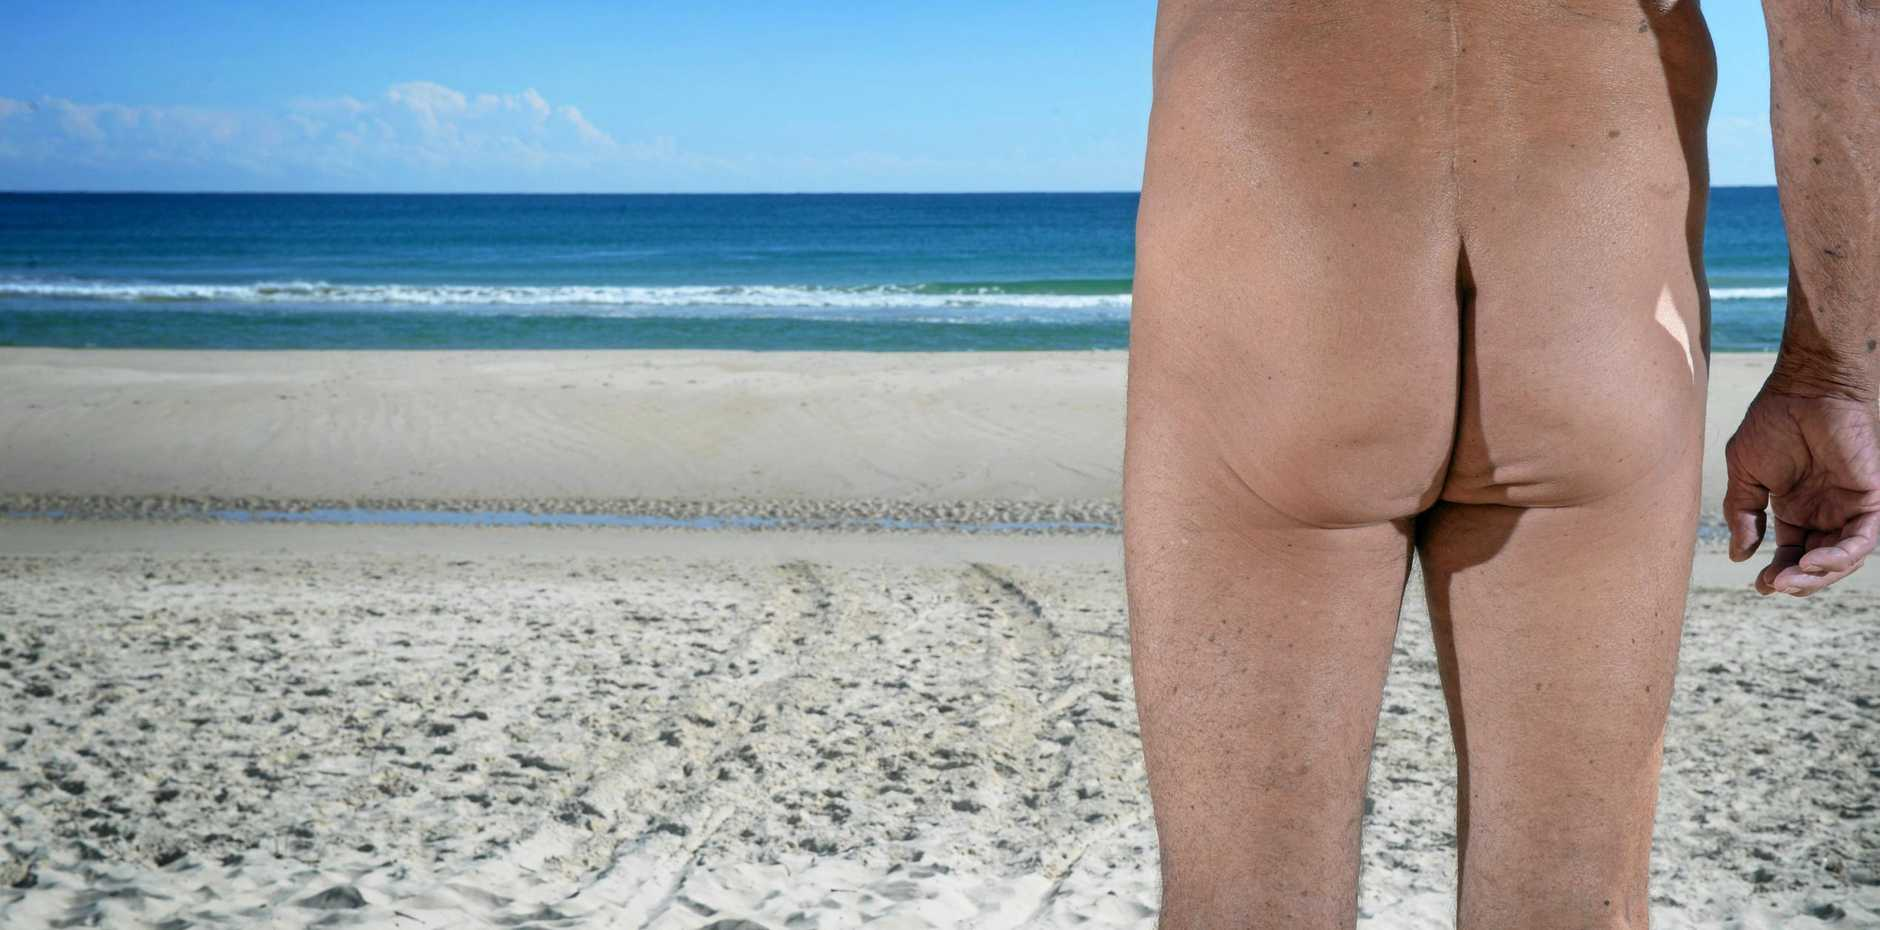 File photo of naked bum - this is NOT a photo of the nudie run in Imbil.